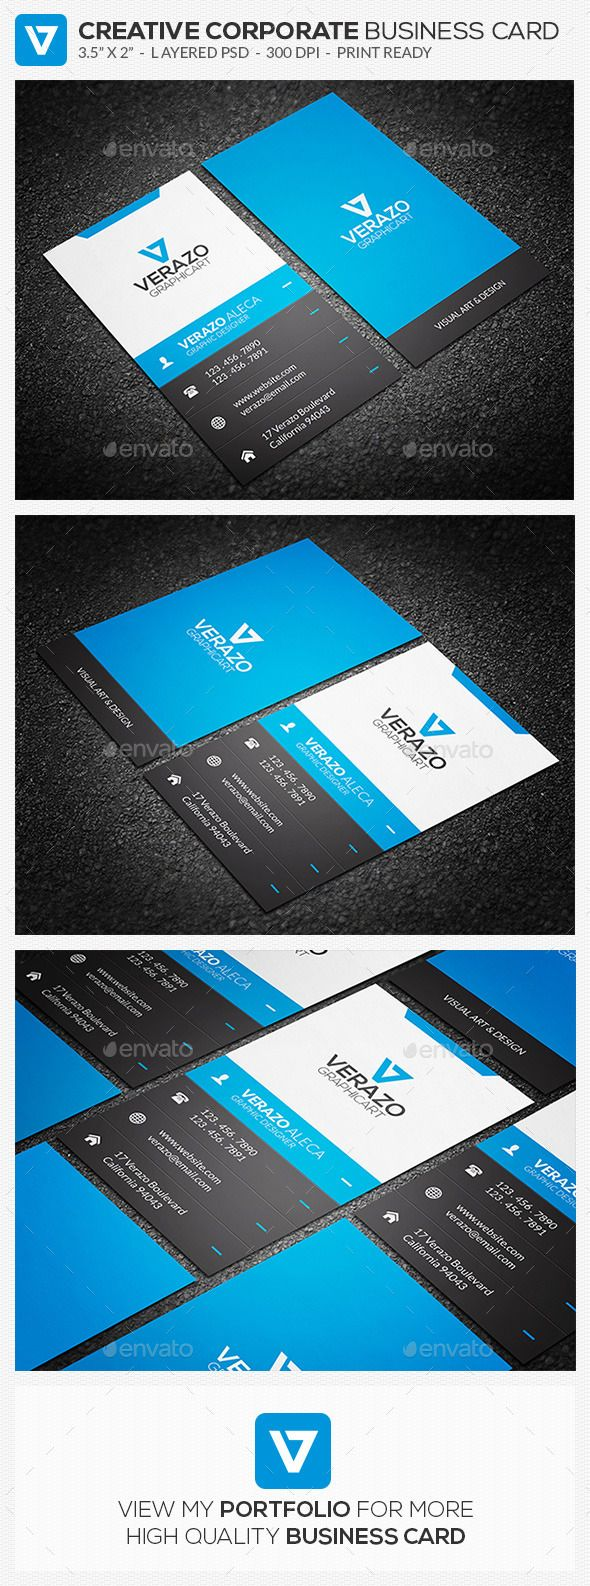 Creative corporate business card 61 corporate business card creative corporate business card template psd buy and download httpgraphicriveritemcreative corporate business card 618950838 reheart Choice Image